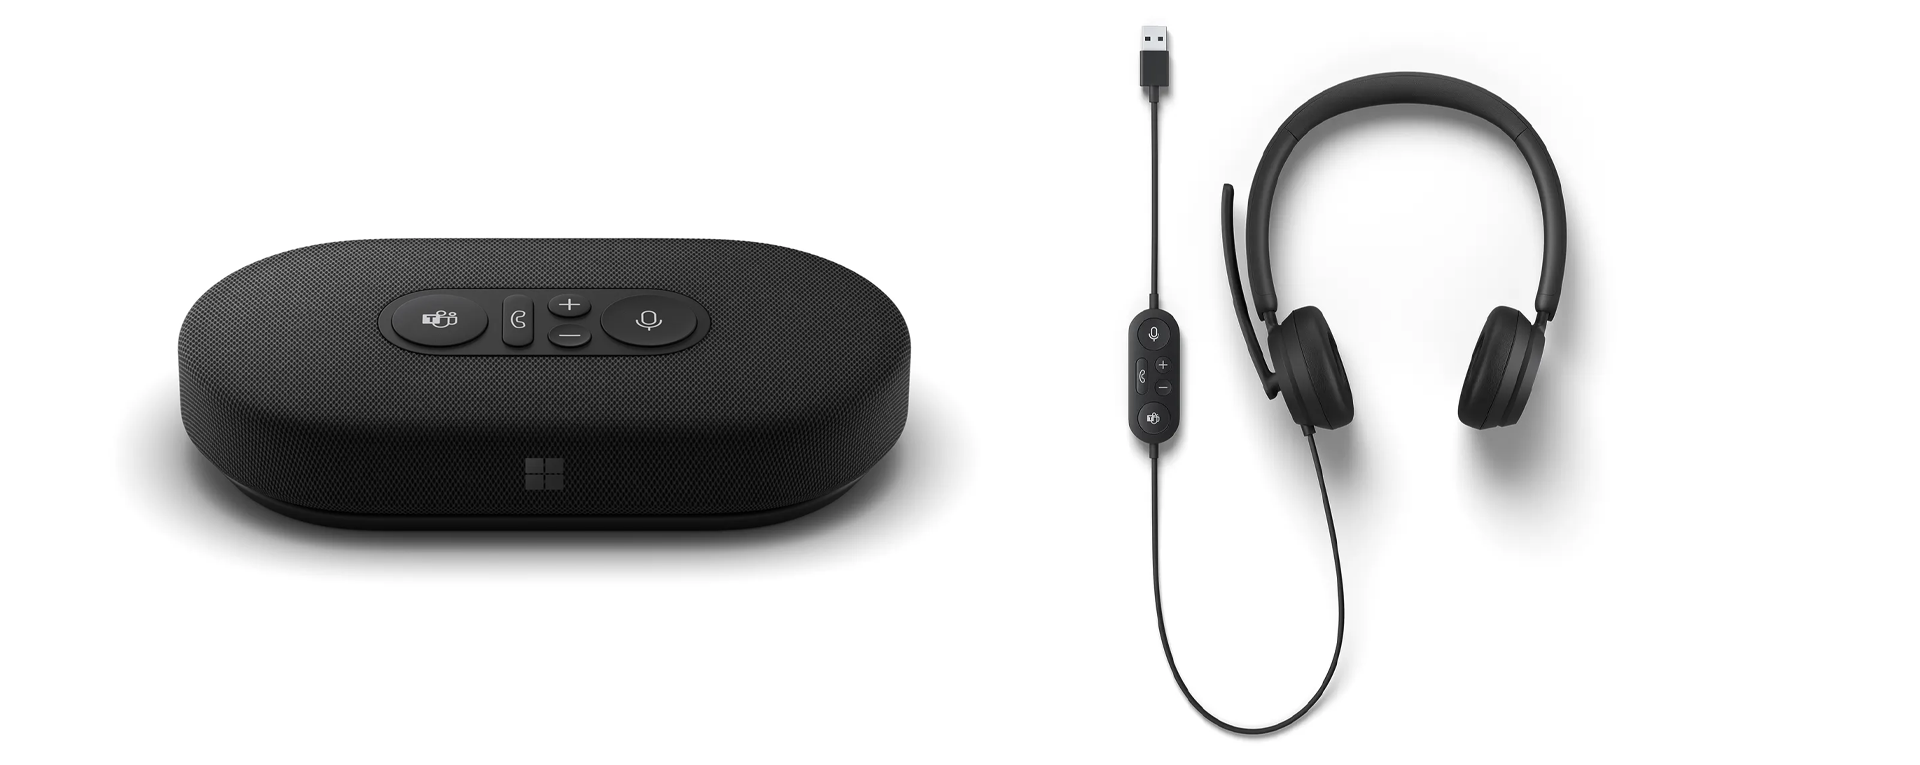 The Microsoft Modern USB-C Speaker and Headset.